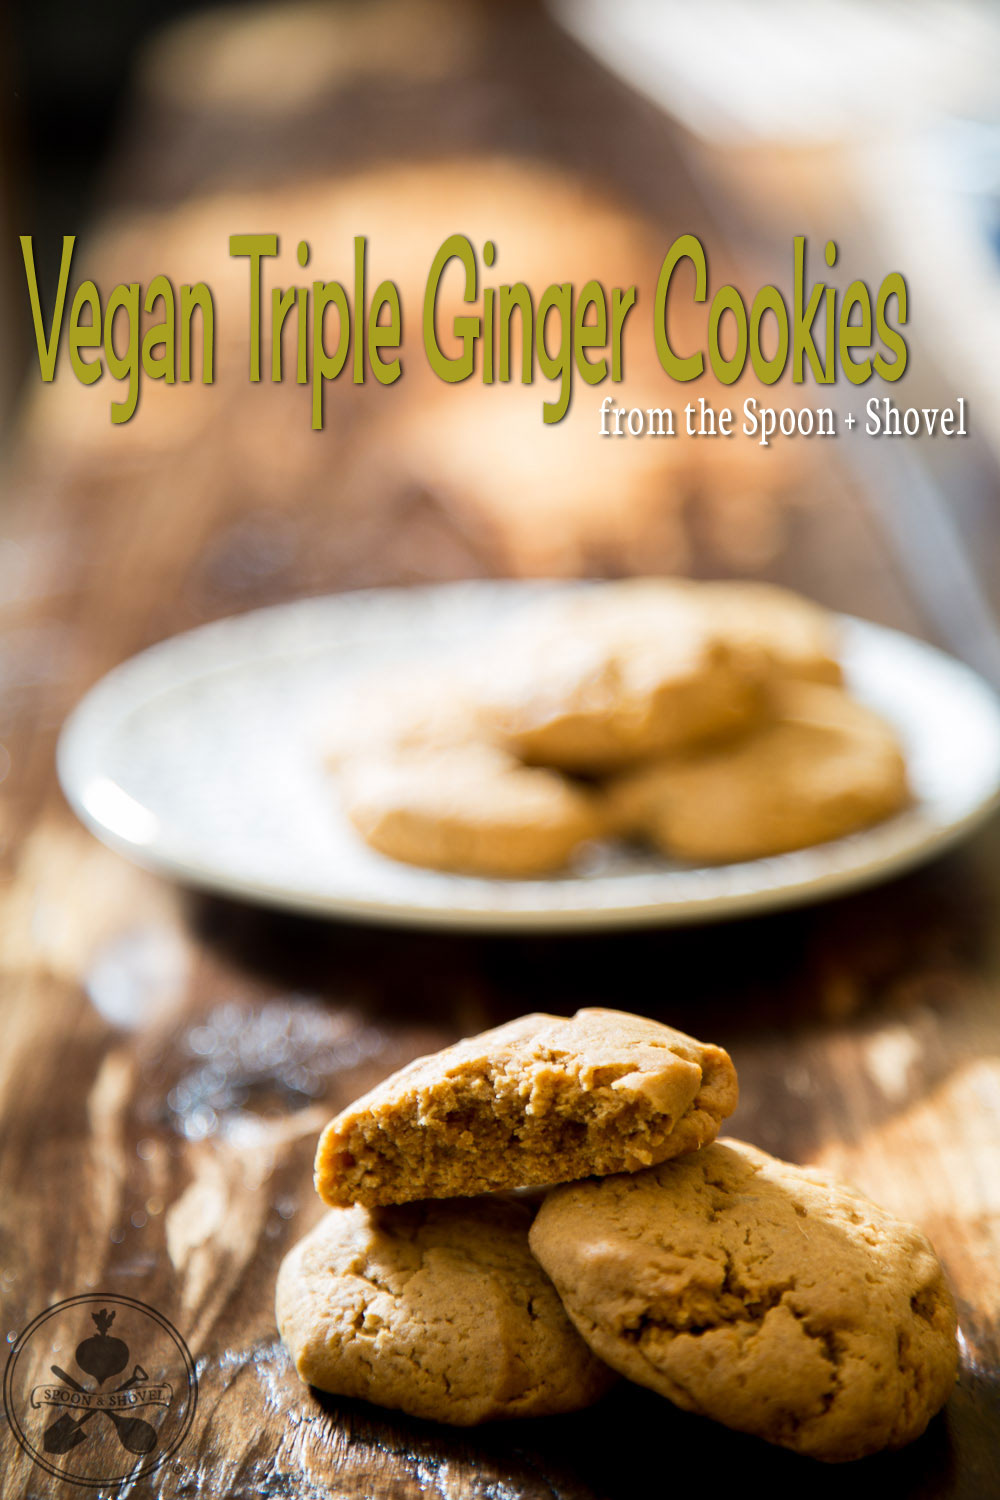 Vegan triple ginger cookies from The Spoon + Shovel